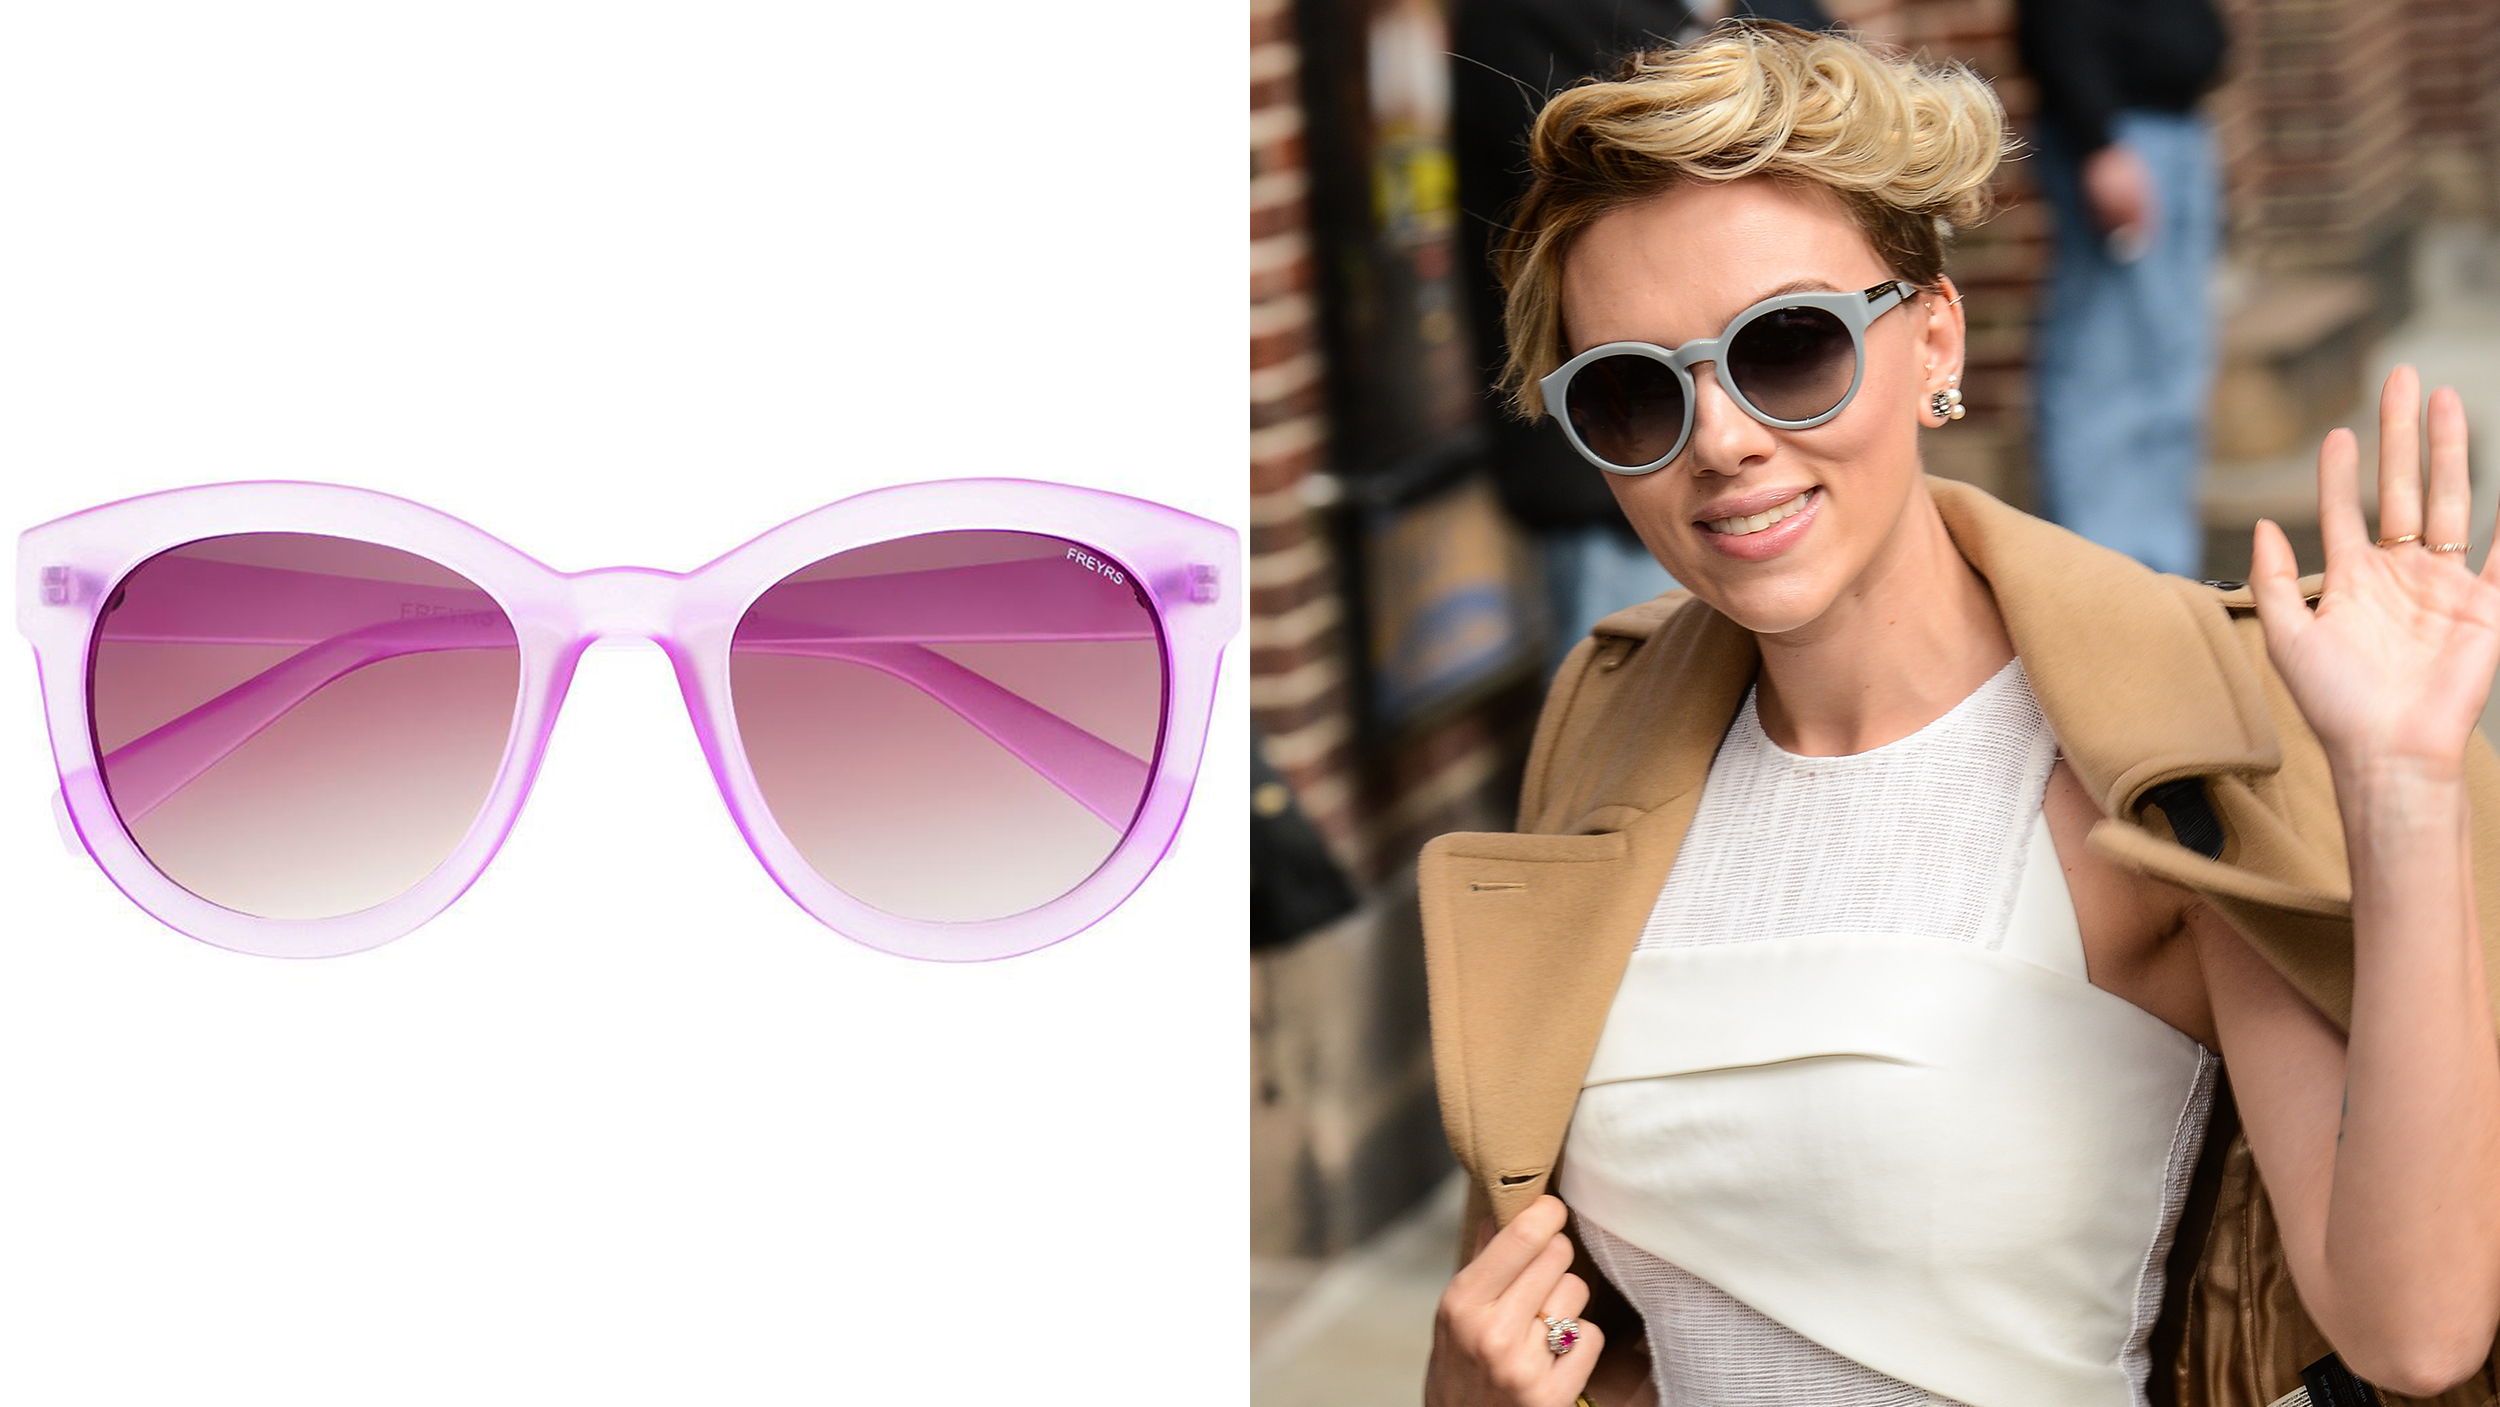 Sunglasses trends at affordable prices: Cat eye, round ...